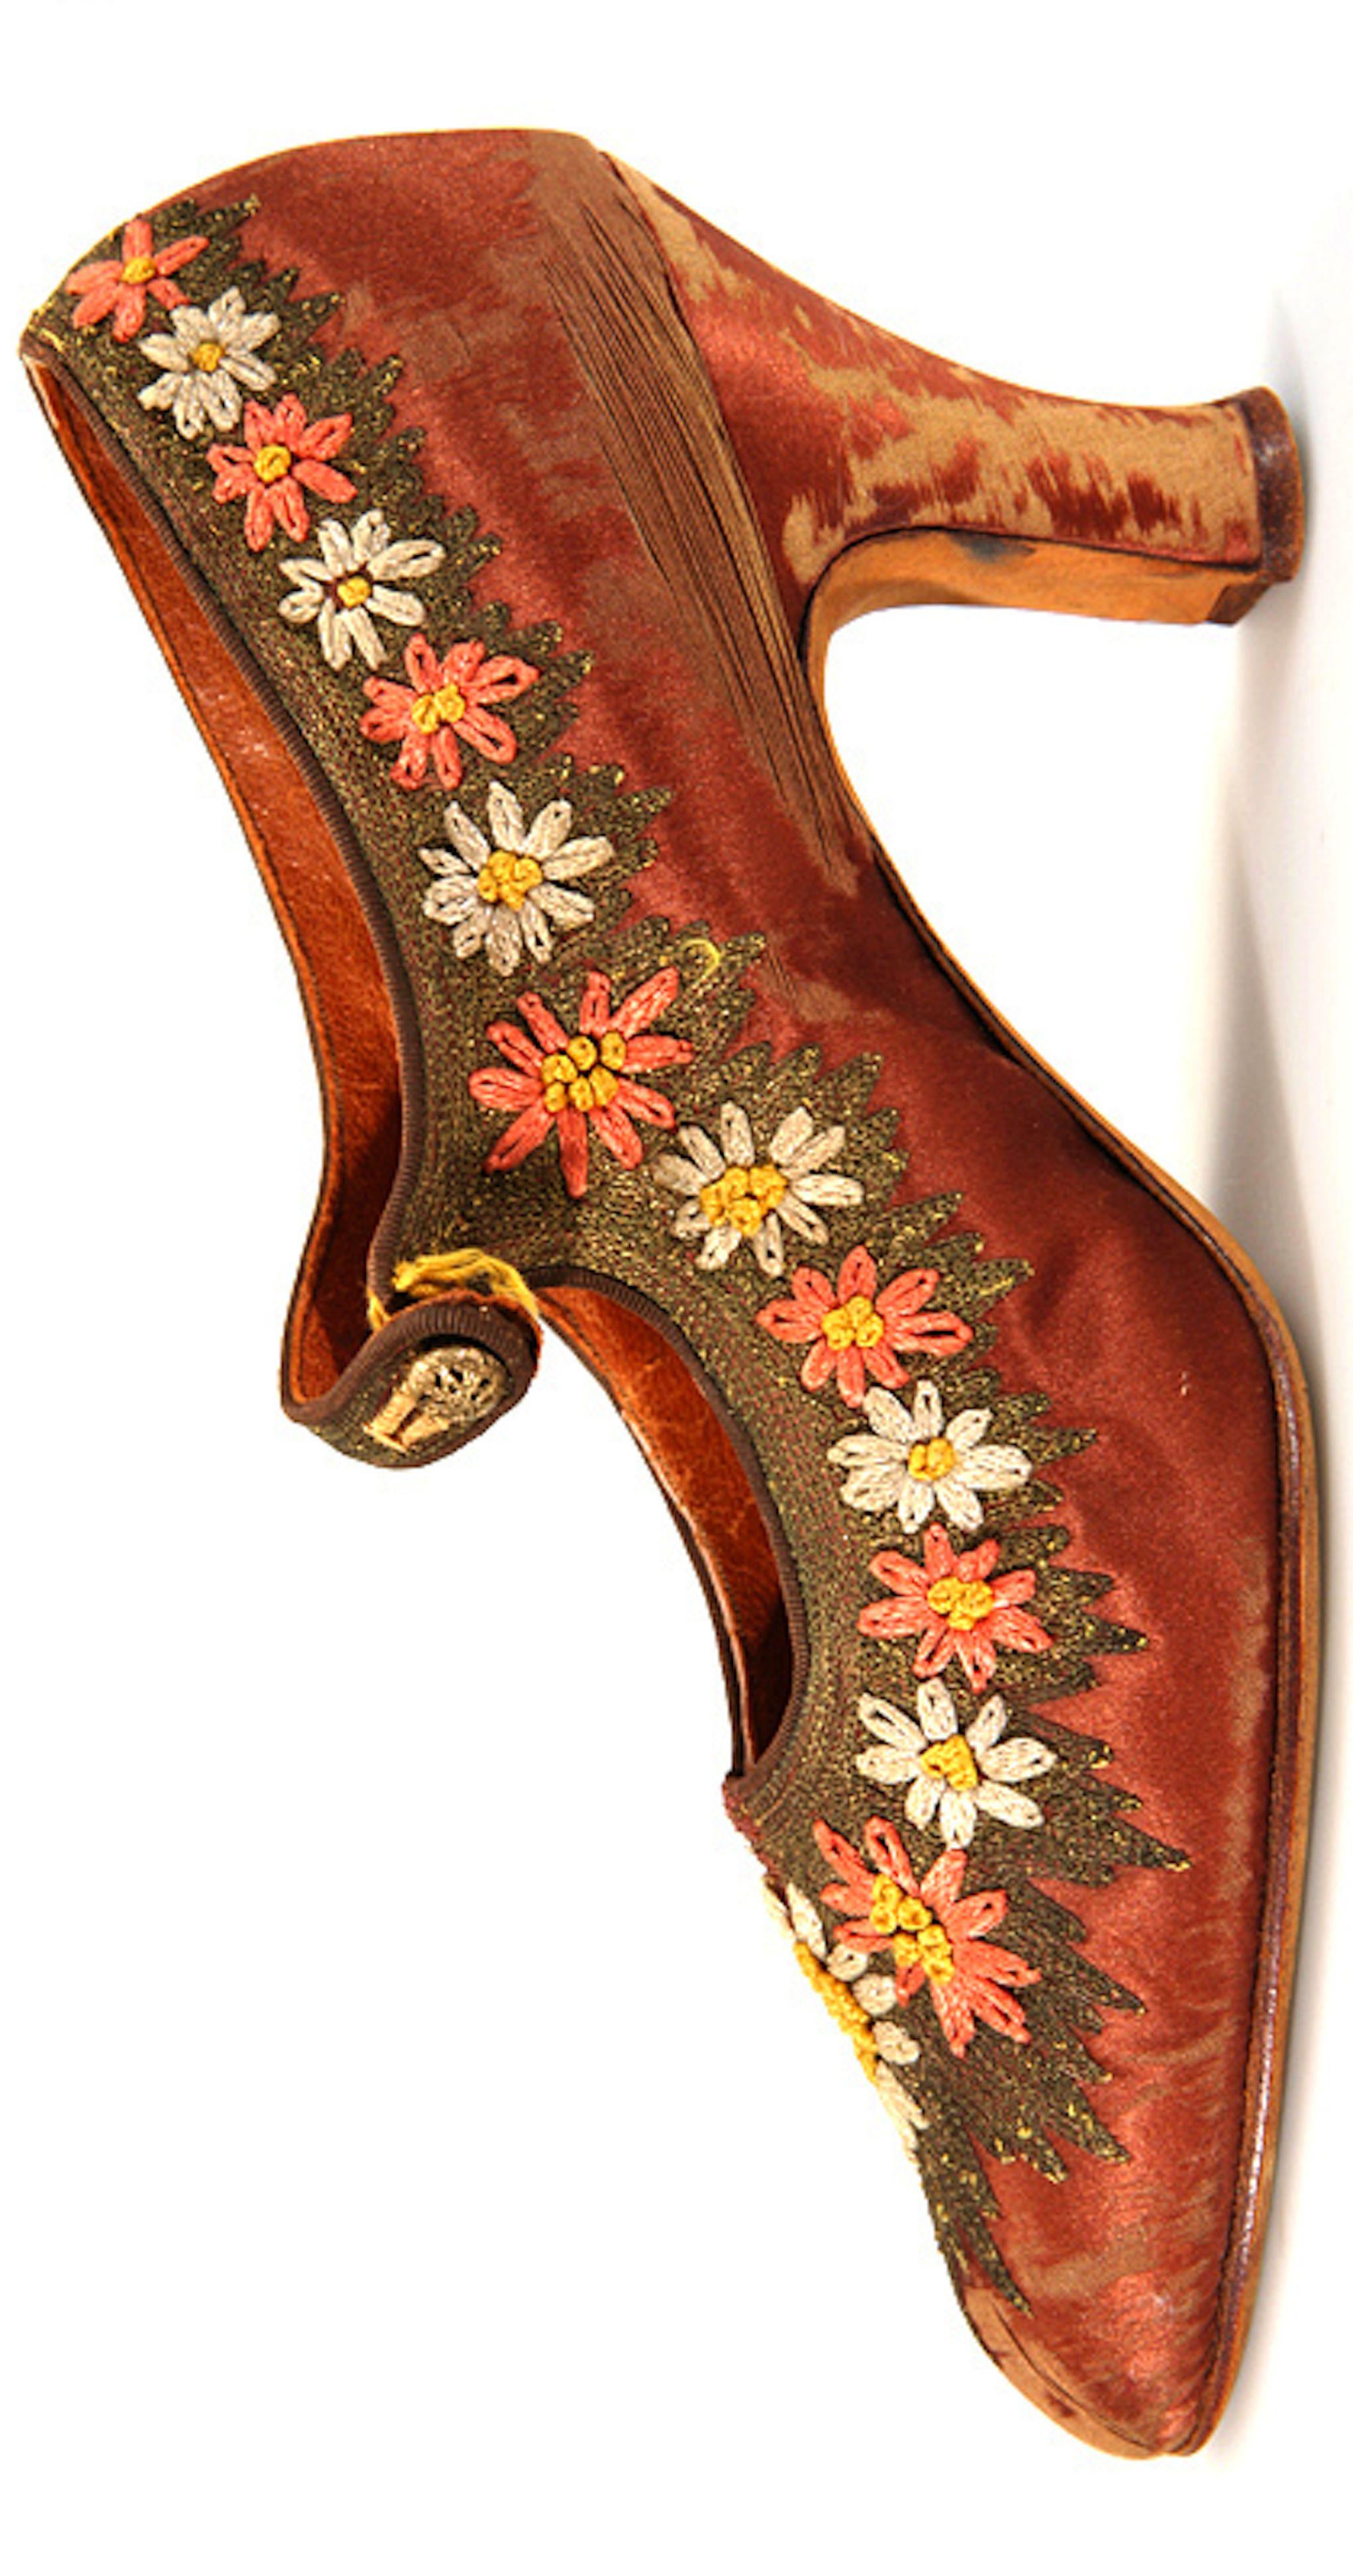 Vintage shoes - N.Hess' Sons - Copper color satin strap shoes, decorated with flower embroidery along the edge - 1920s - France